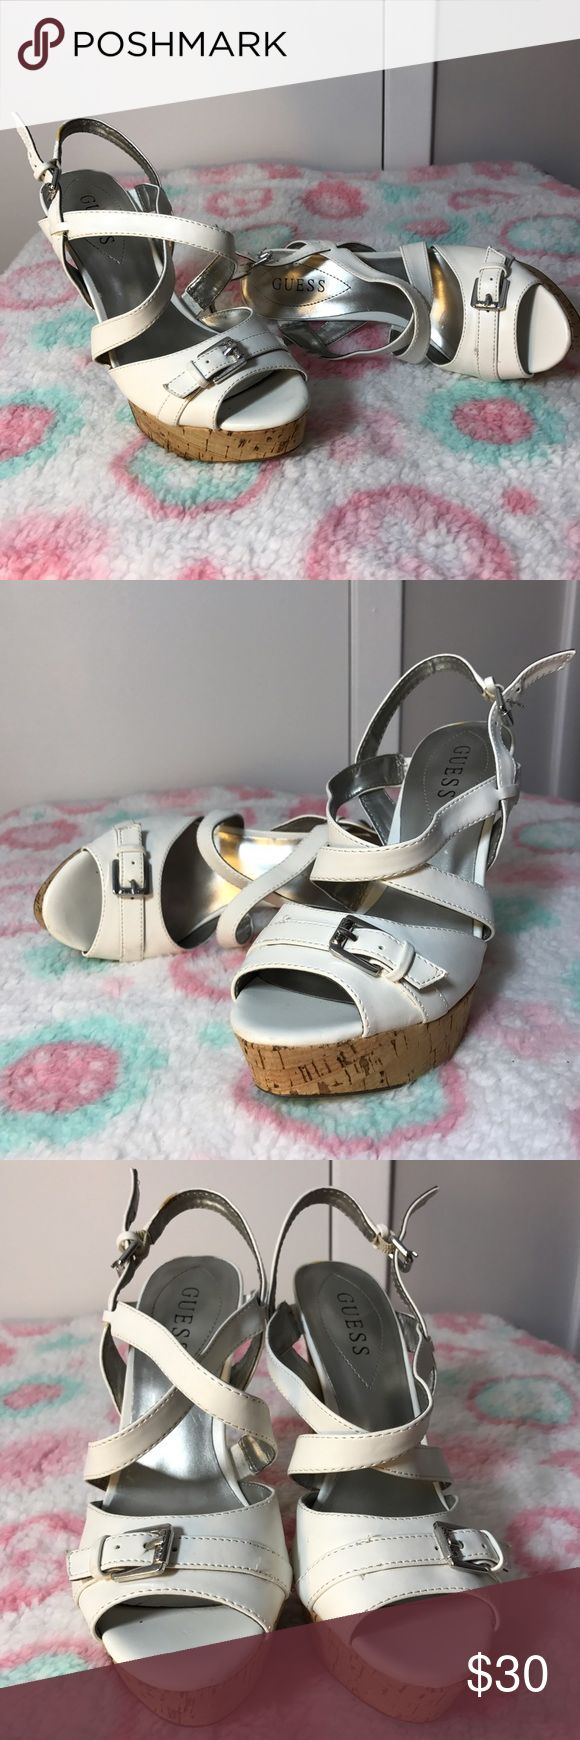 Guess White Strappy Slingbacks Very gently used. The bottom front is worn but the heel is very good. There is a slight scuff in the back of the left shoe. There is some wear to the straps but not bad. These are size 8M. Guess Shoes Heels